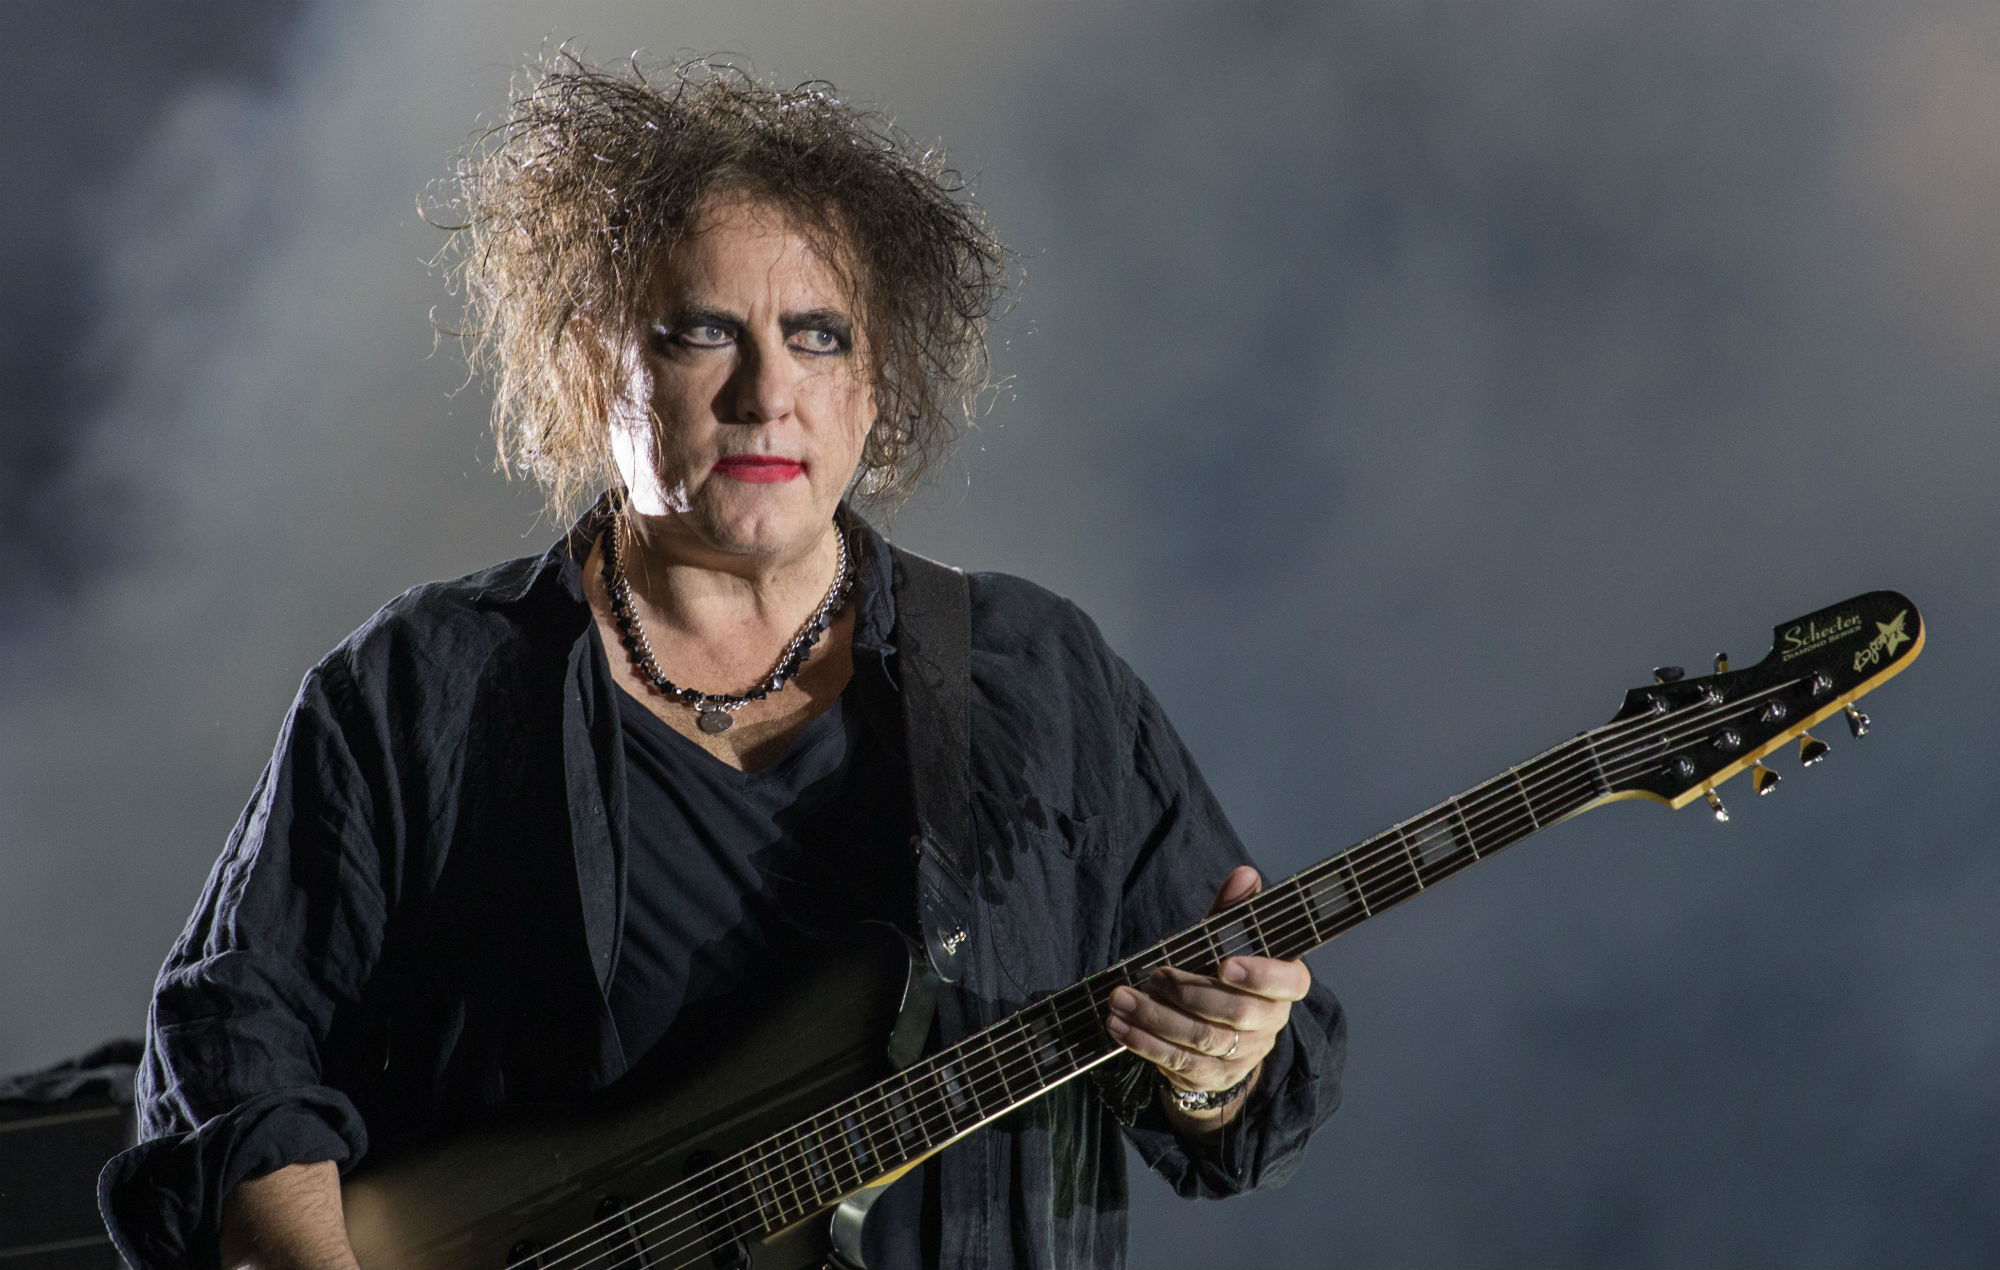 Robert Smith, líder de The Cure, cumple 62 años